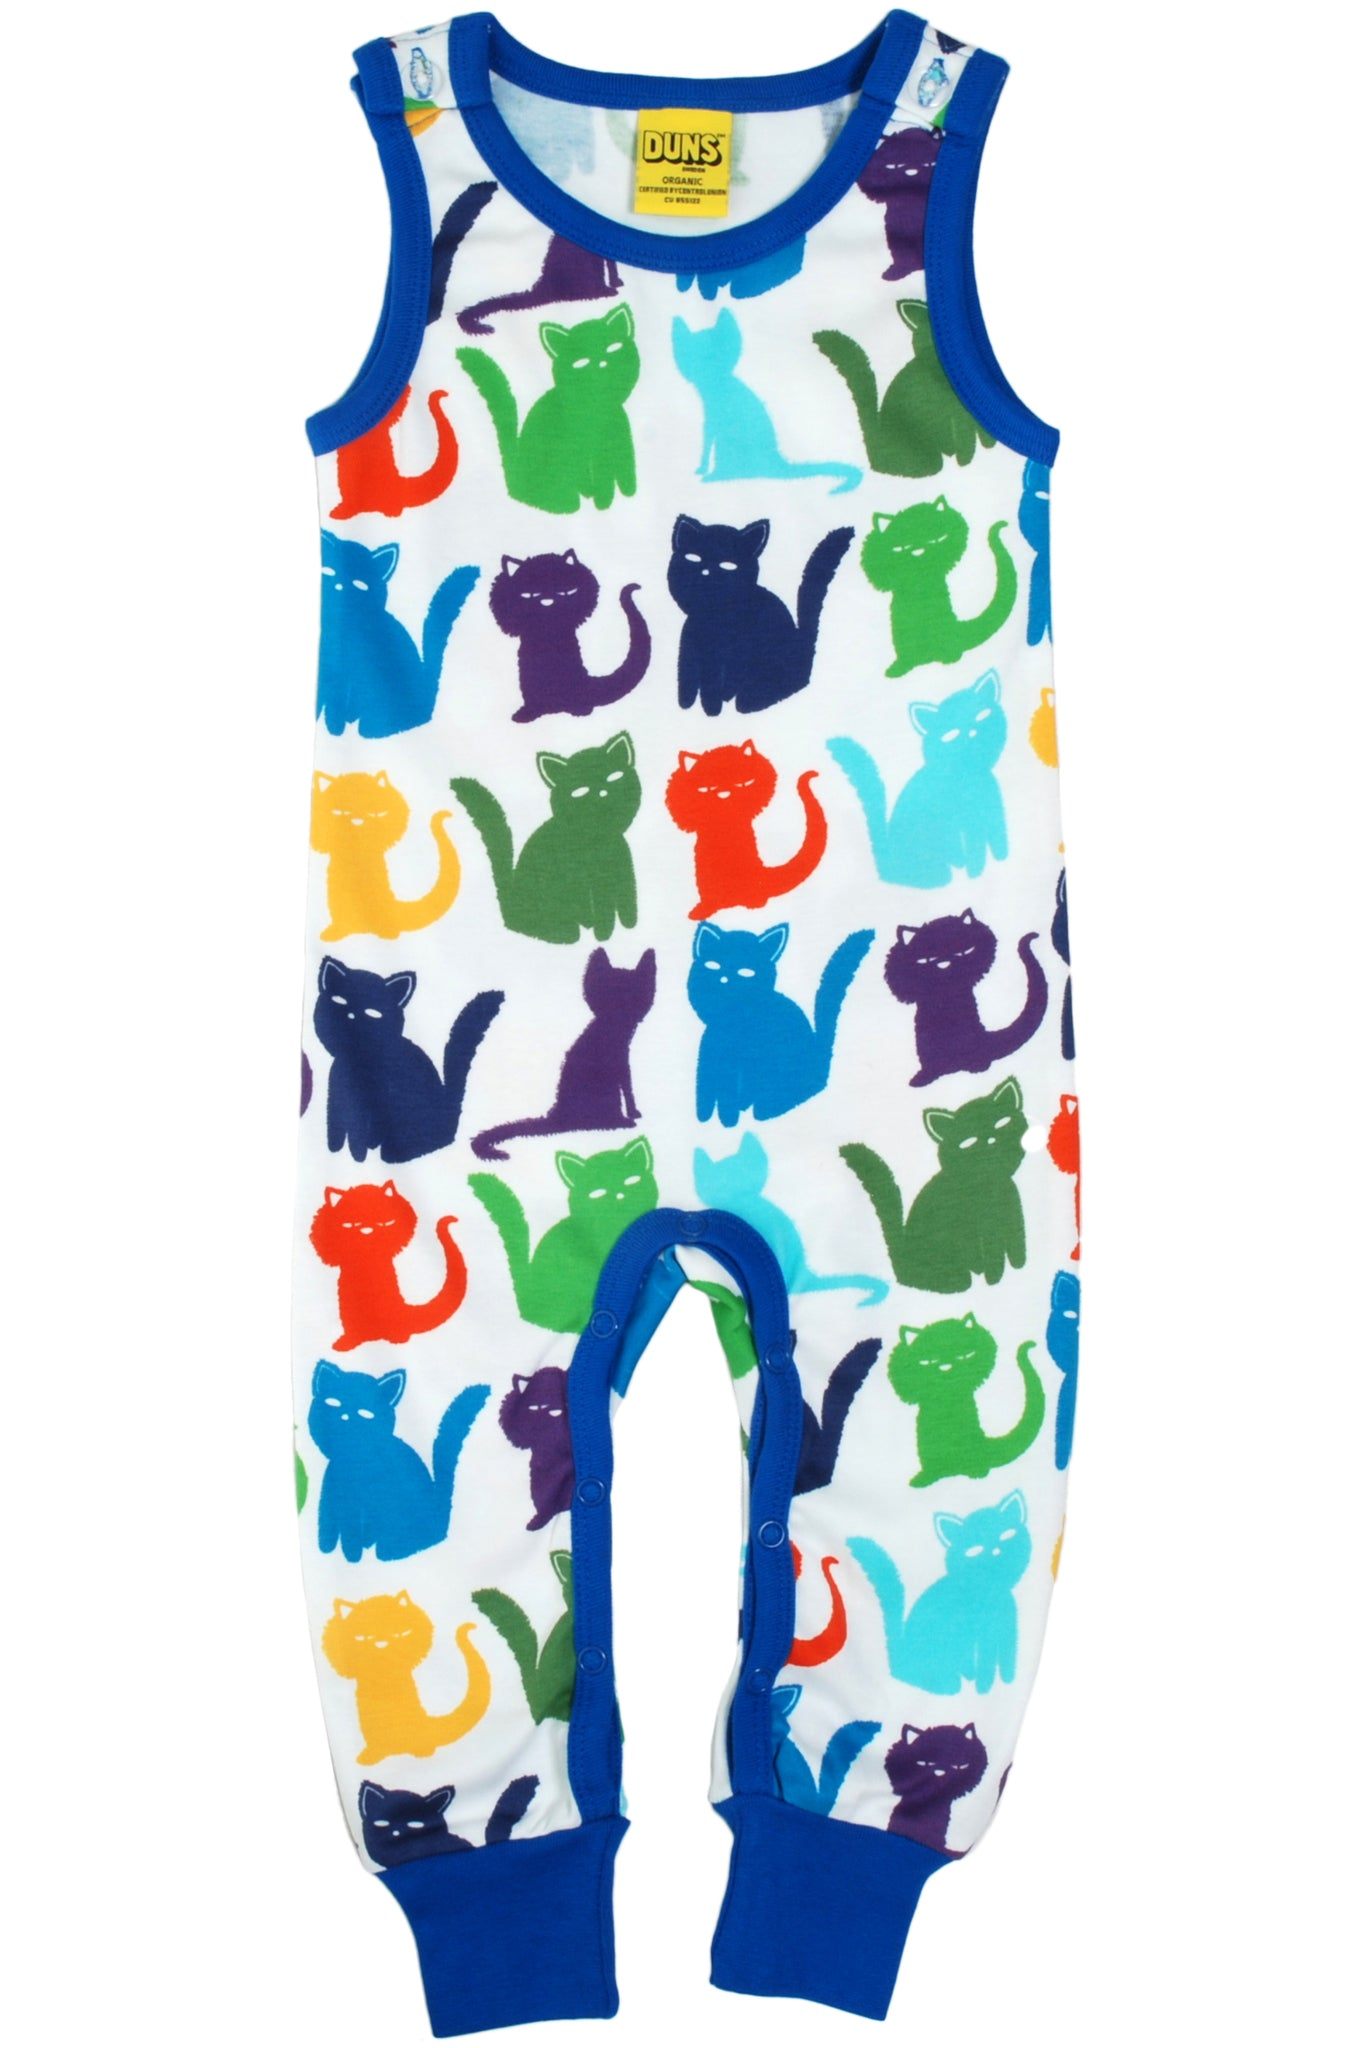 Dungaree Cats Multicolour White - DUNS Fashion - Snugglefox